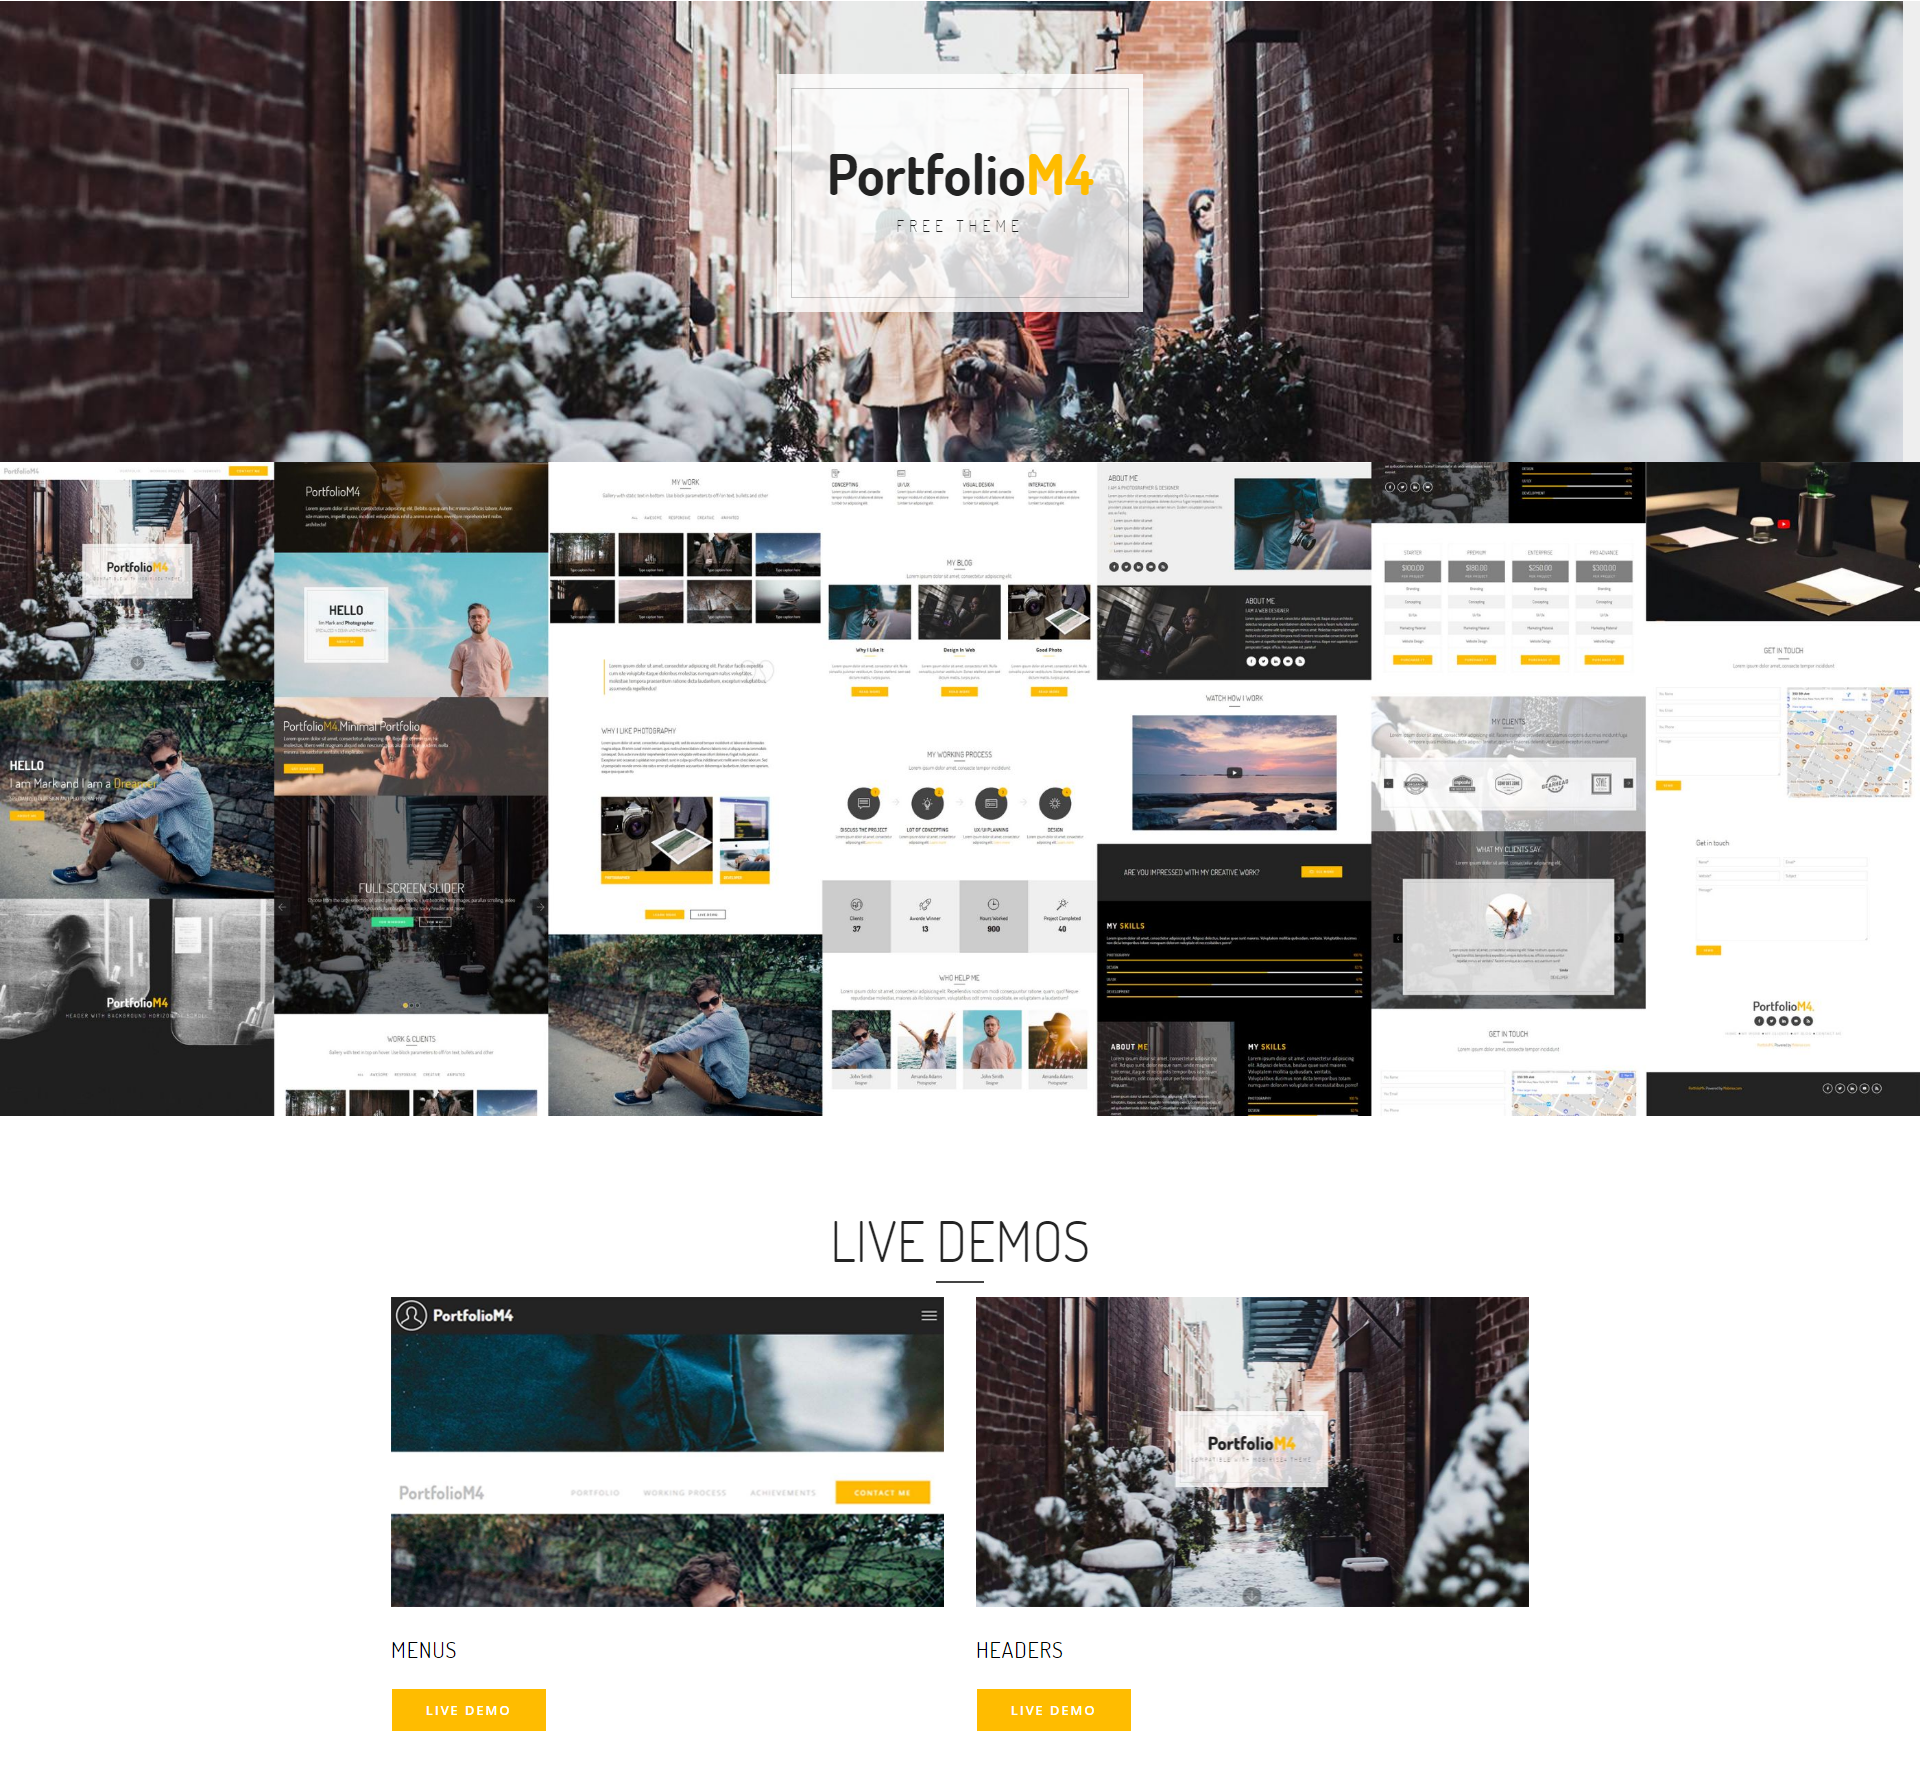 Free Download Bootstrap PortfolioM4 Themes